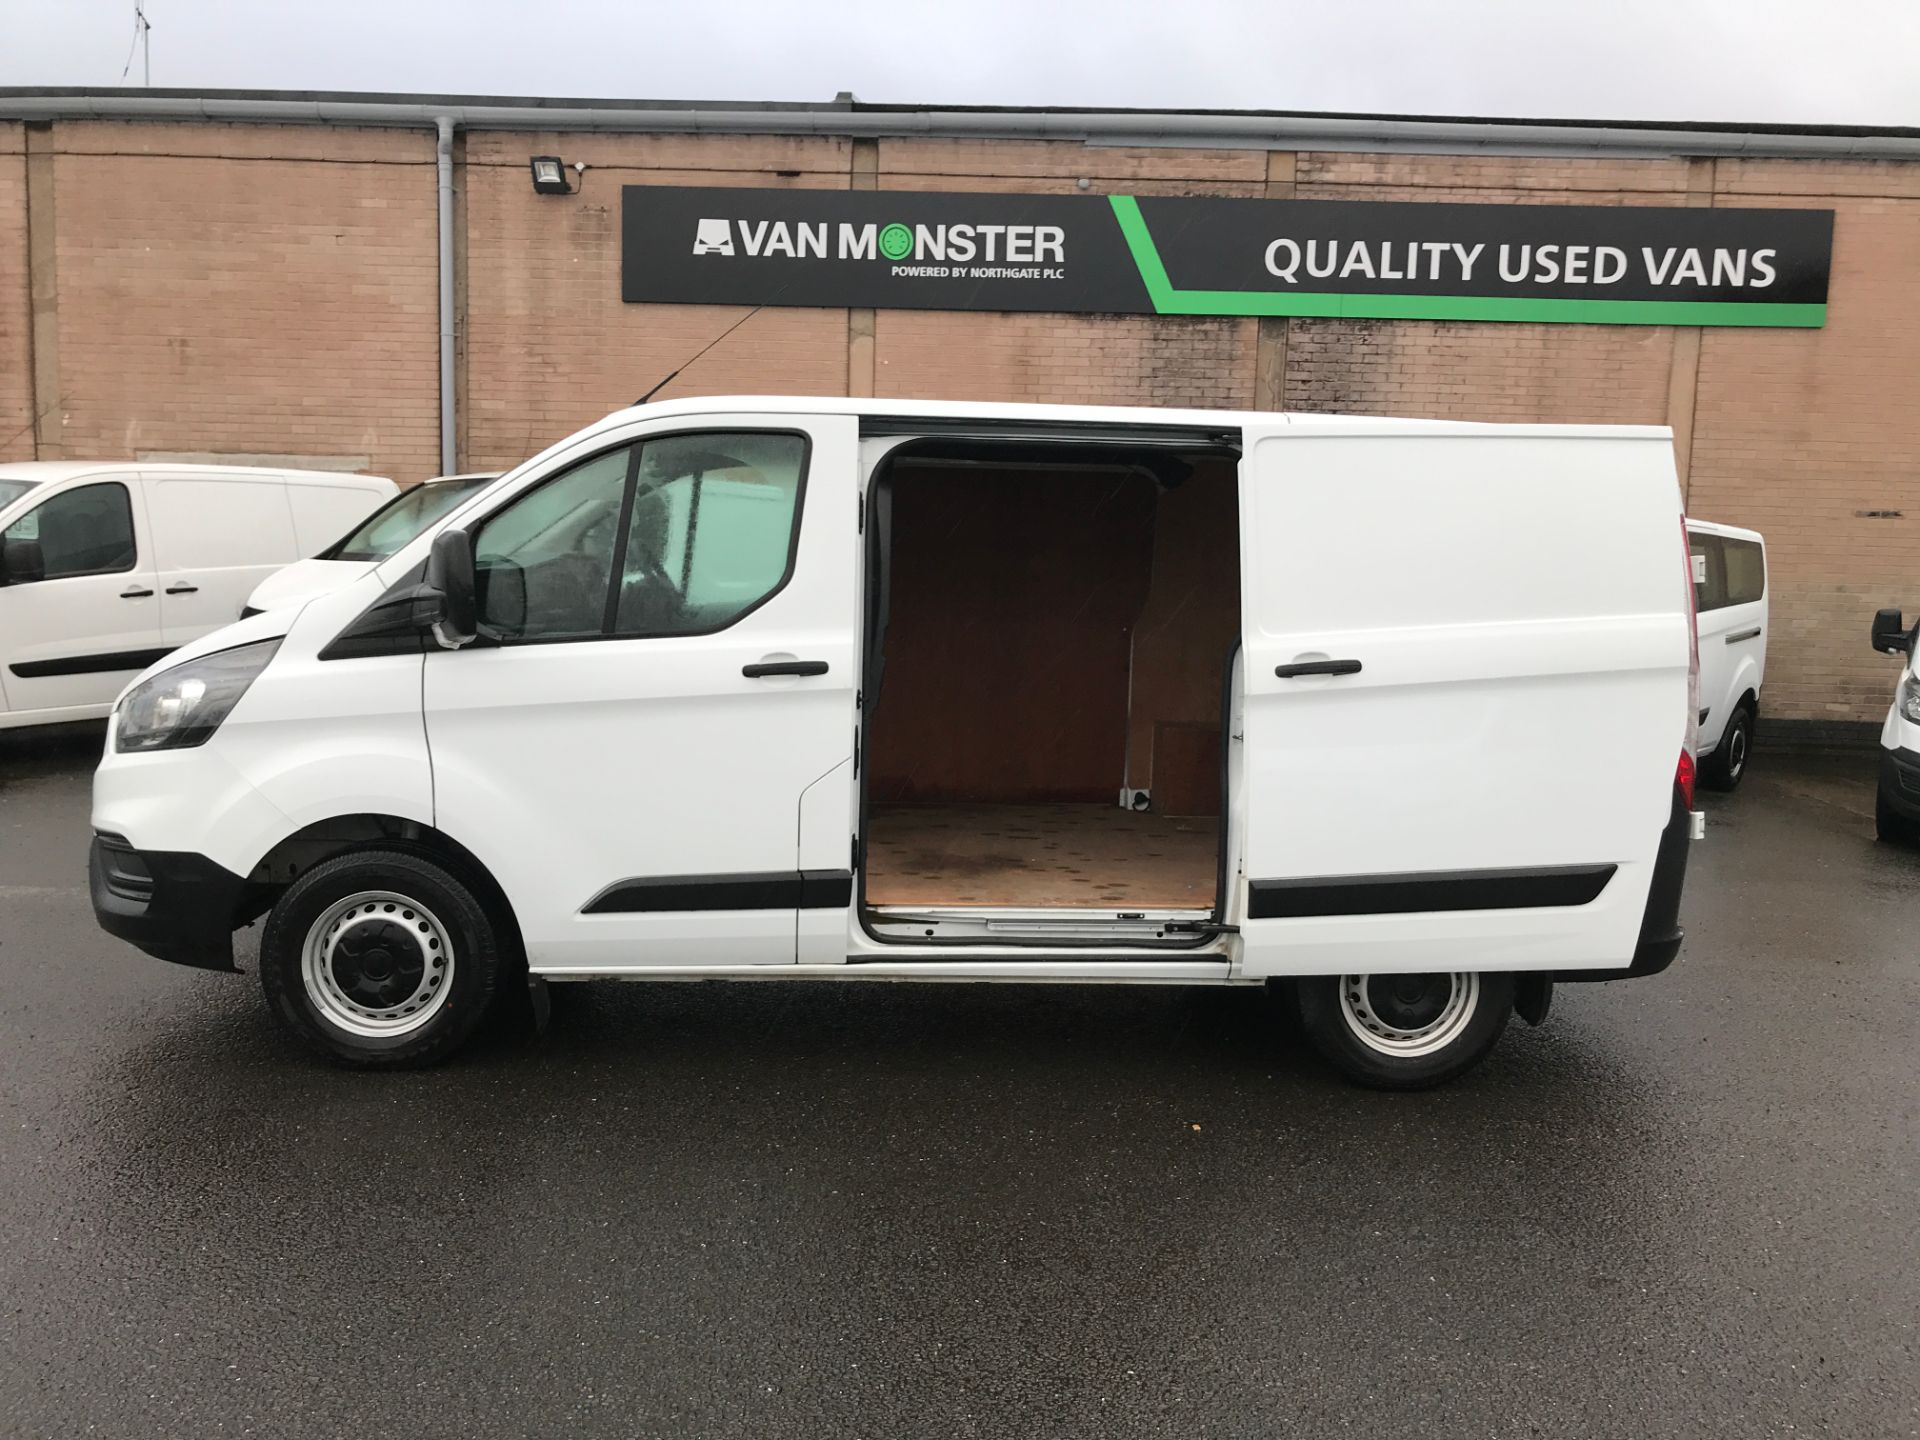 2018 Ford Transit Custom 300 L1 2.0TDCI 105PS LOW ROOF EURO 6 (FP18AZT) Image 11